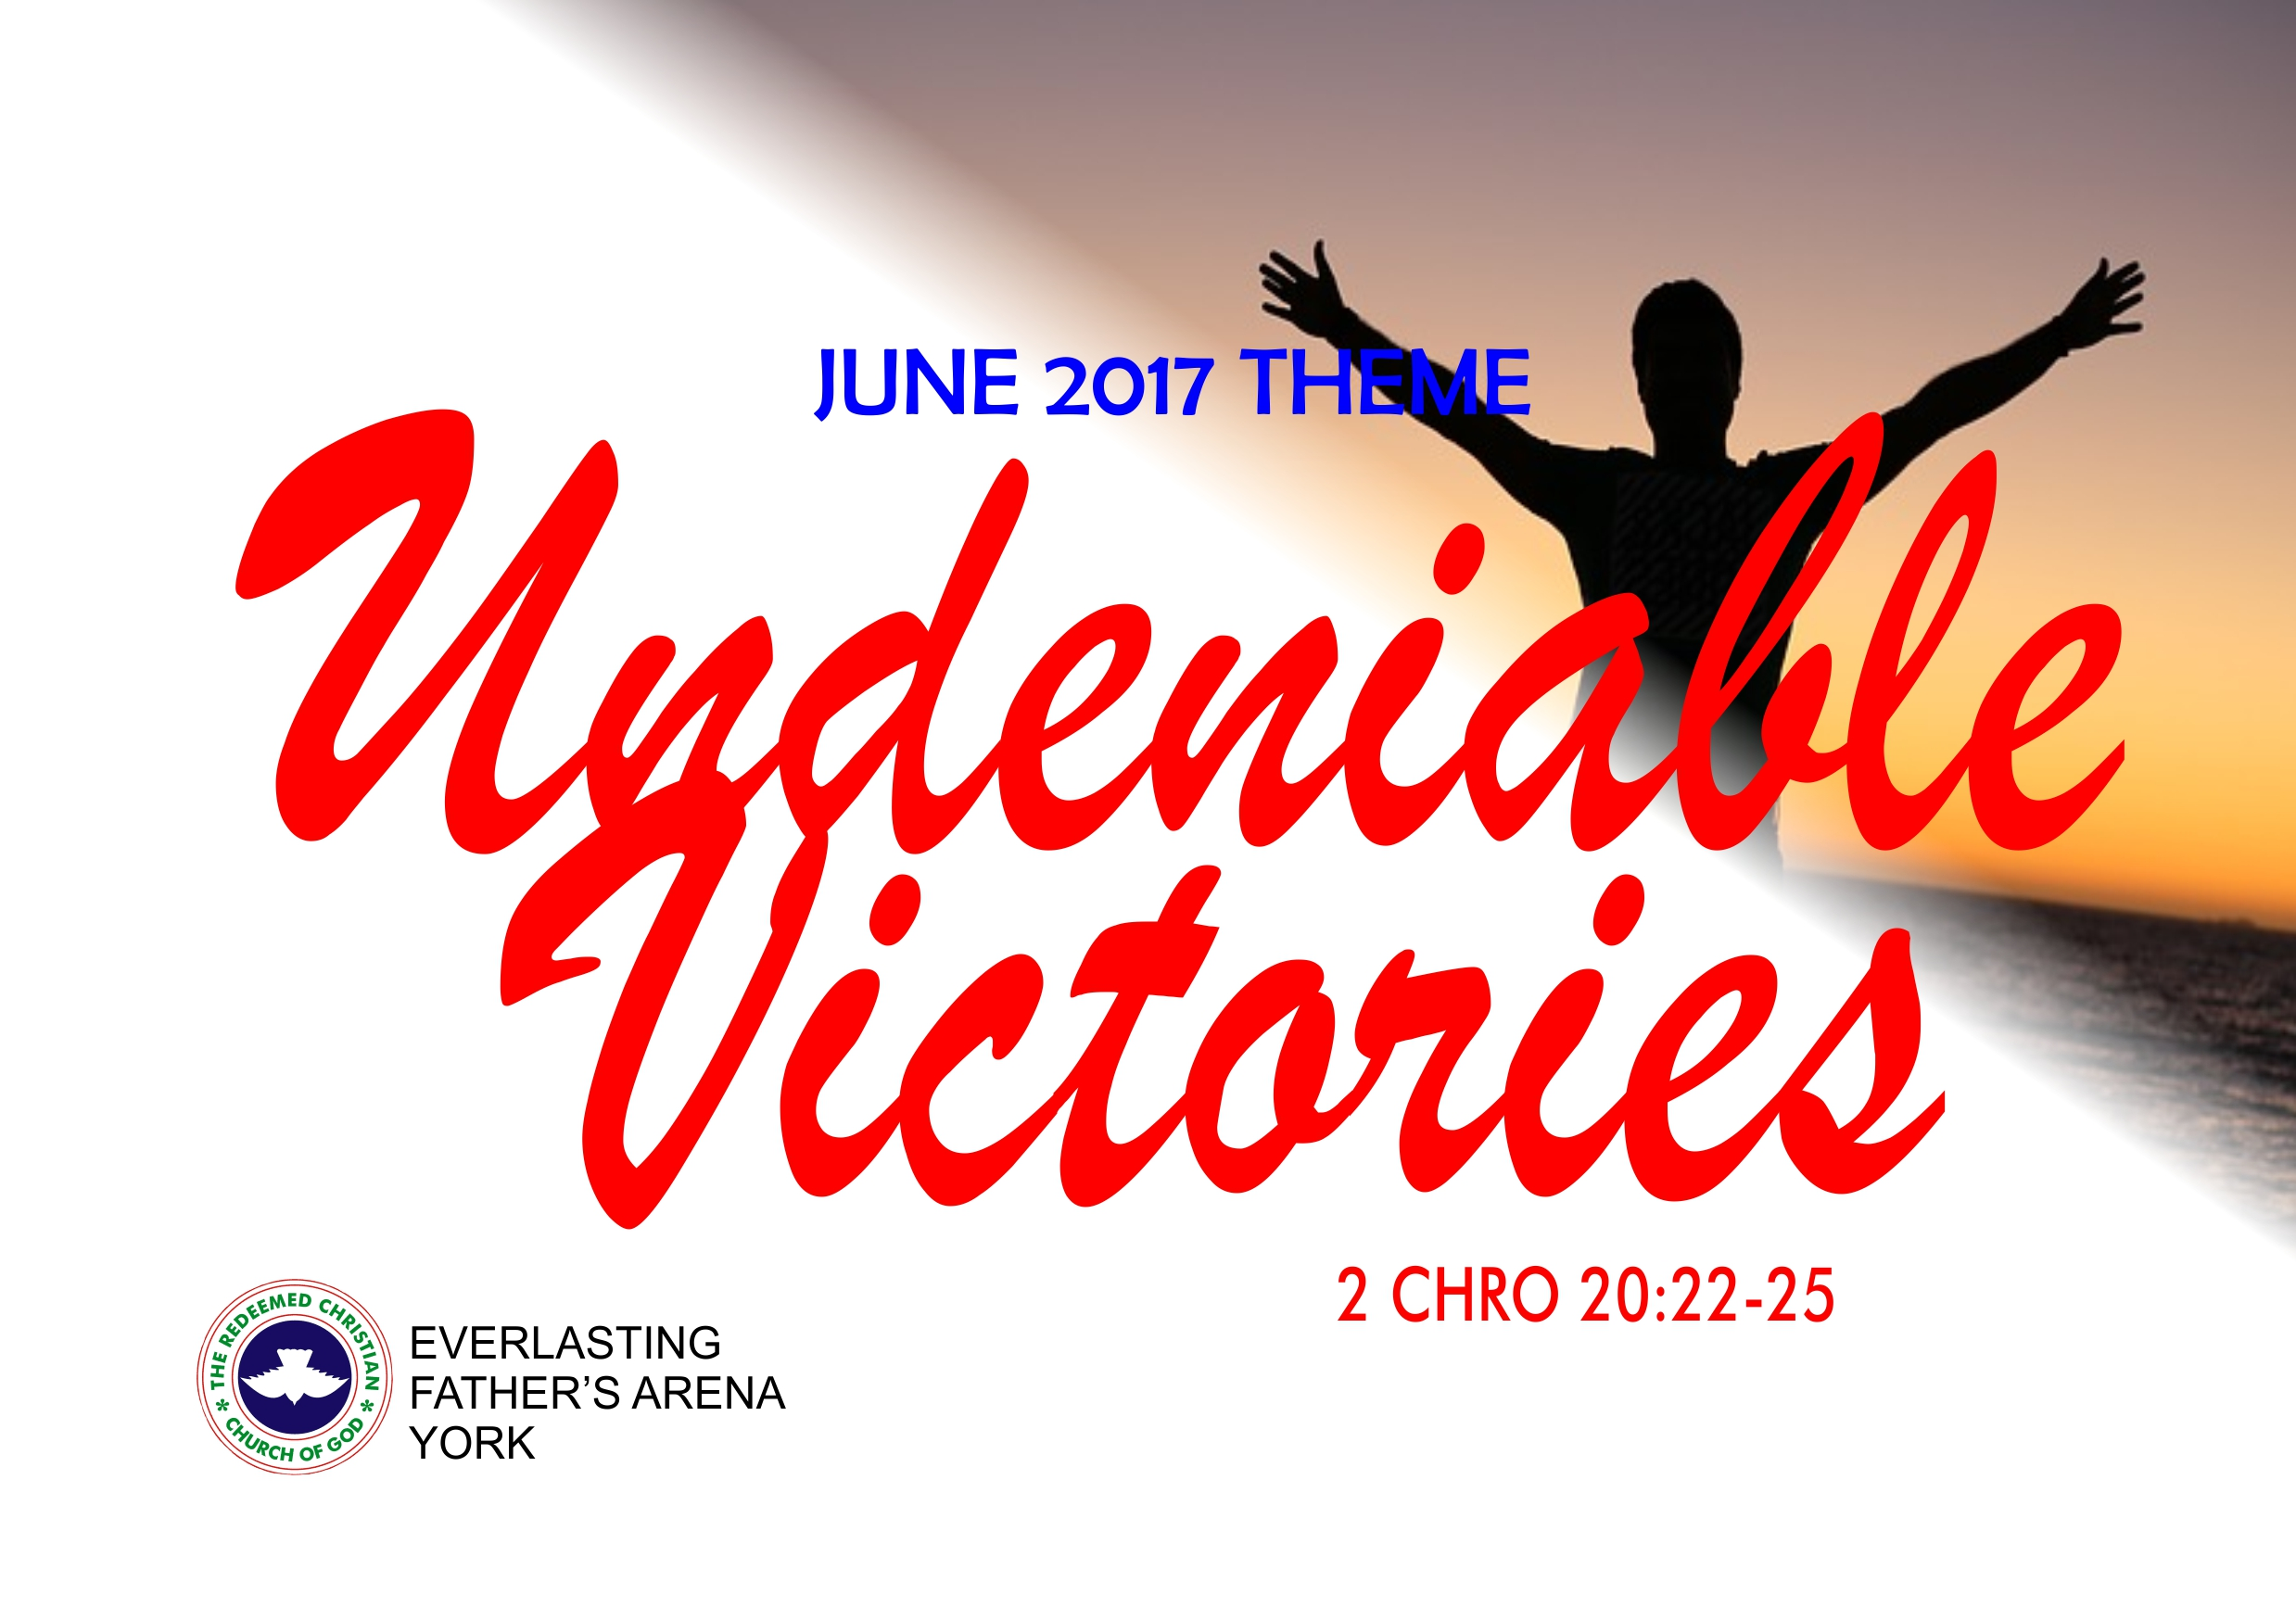 June 2017 – Our Month of Undeniable Victories (2 Chron 20:22-25)